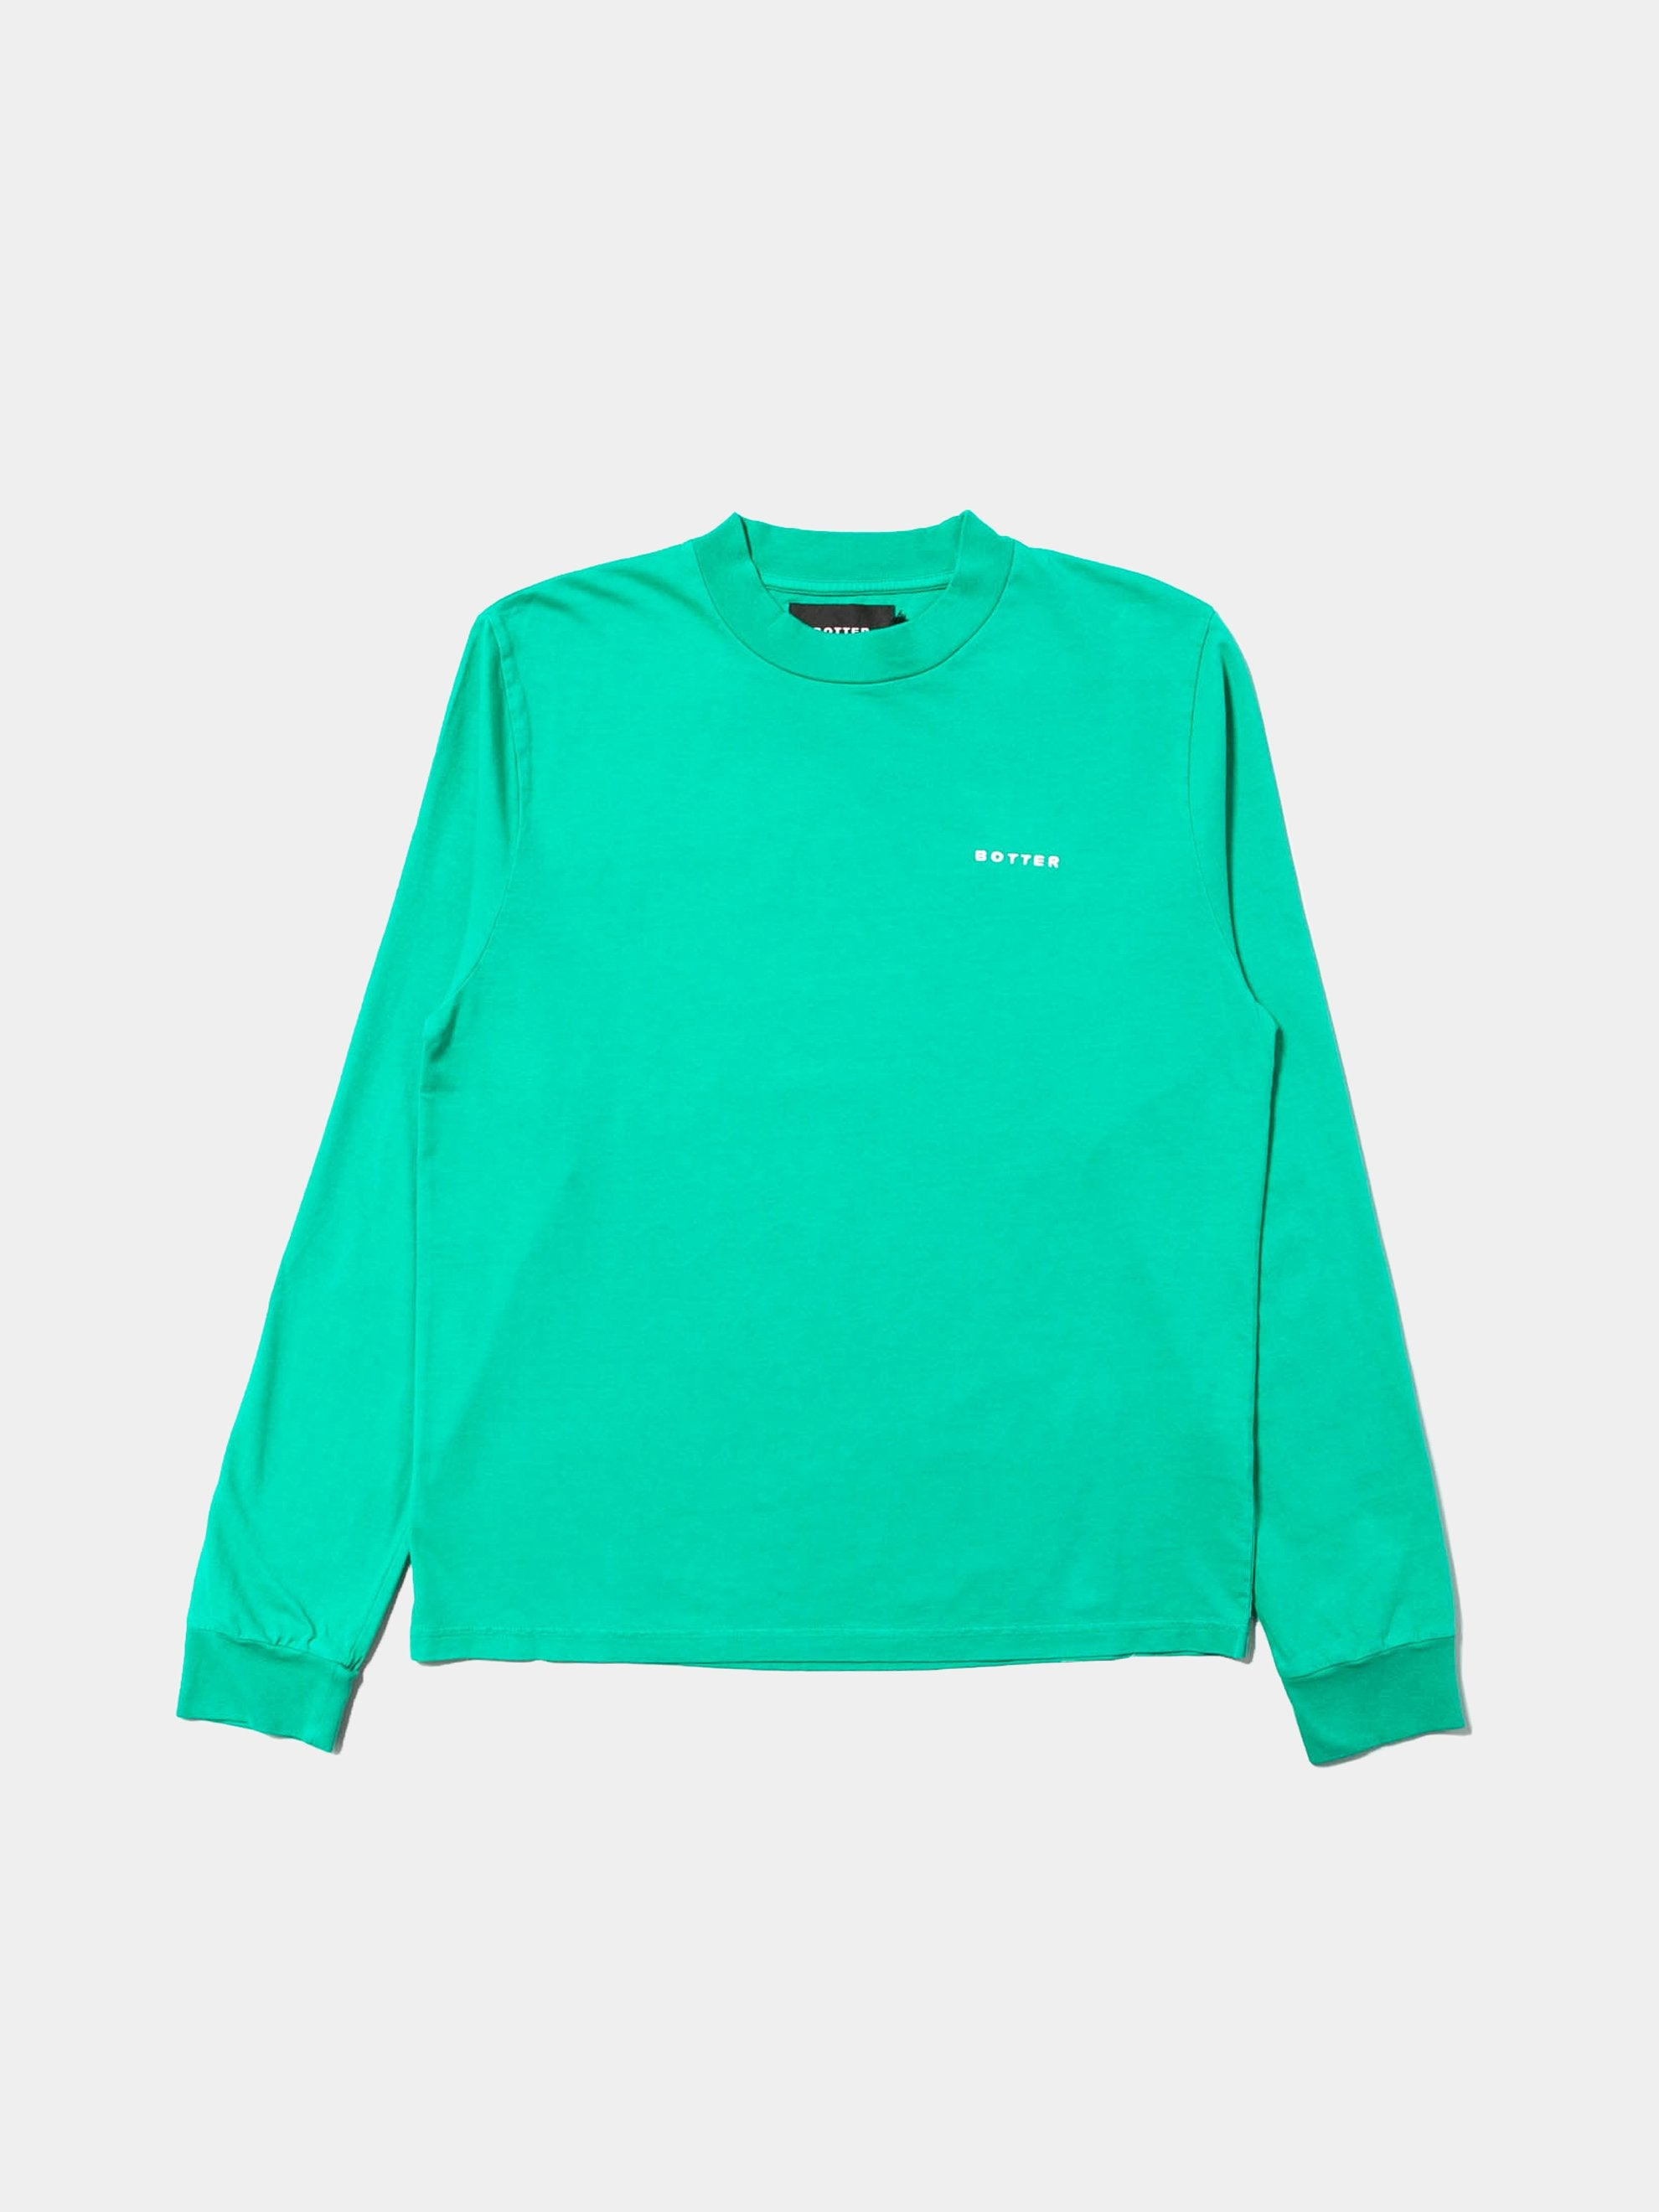 Grass Green Long Sleeve Embroidery Top 1